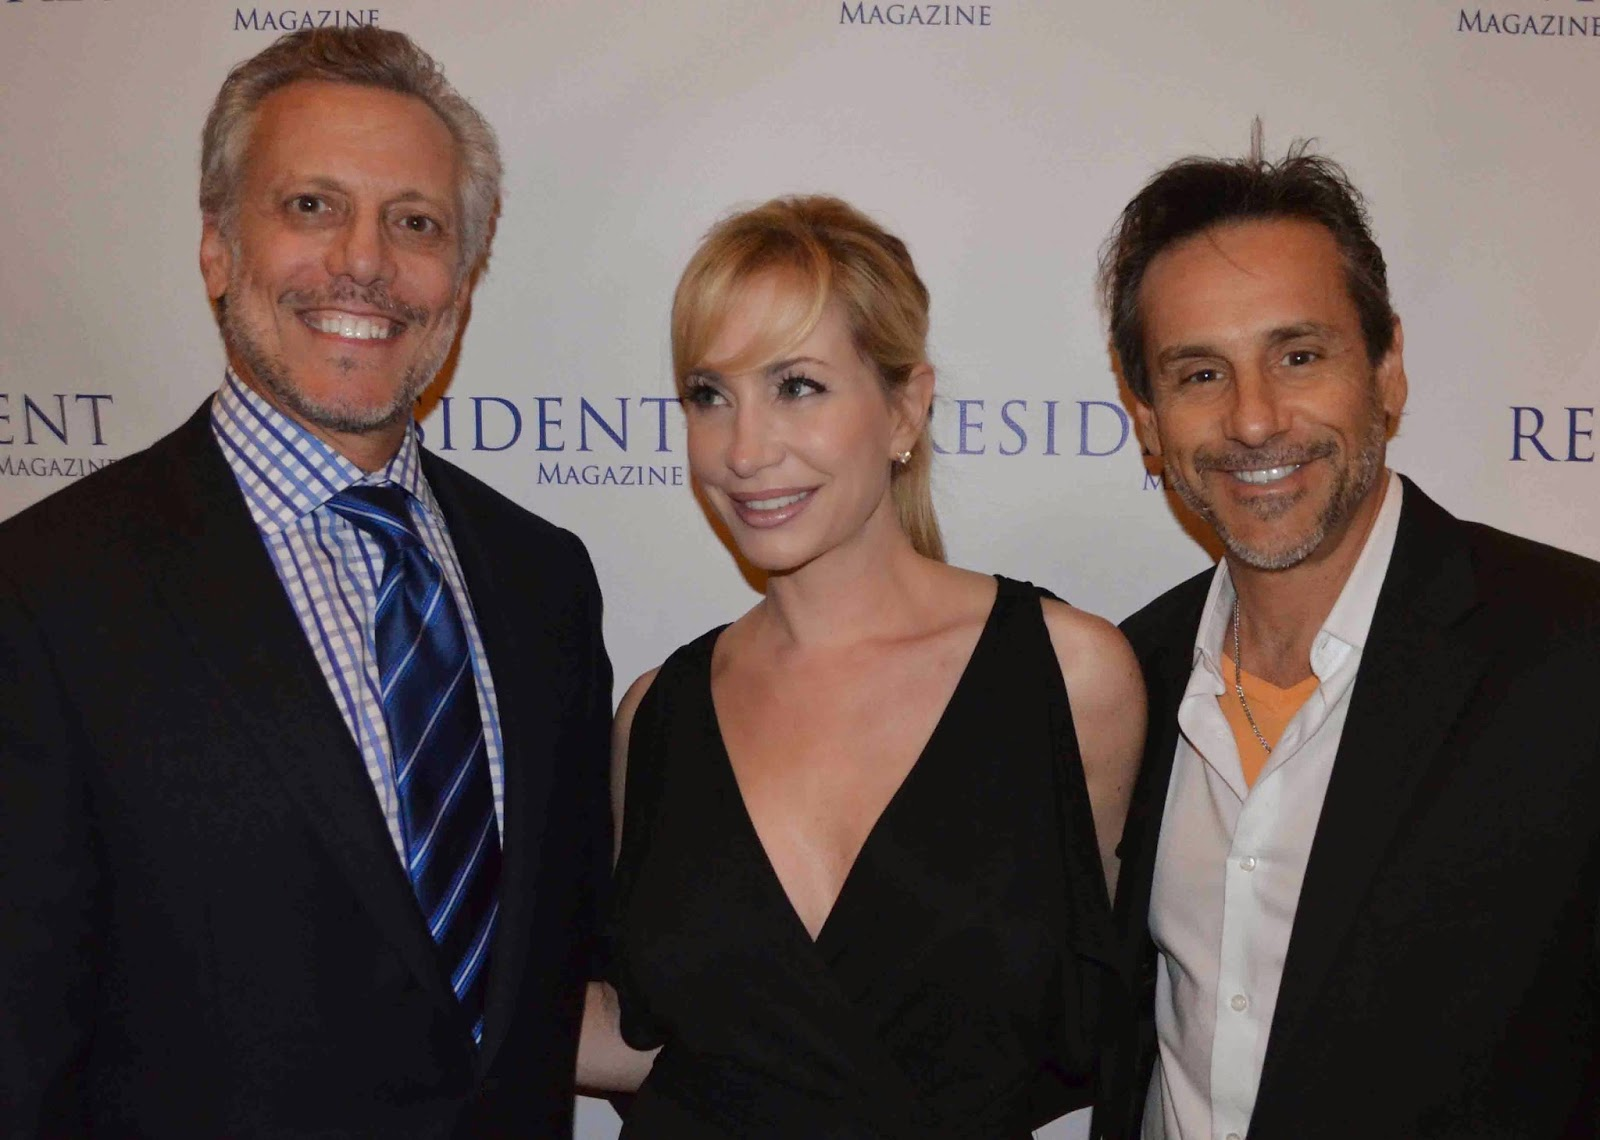 times square gossip resident magazine celebrates gossip table dr steven j pearlman donna graziano and larry r o